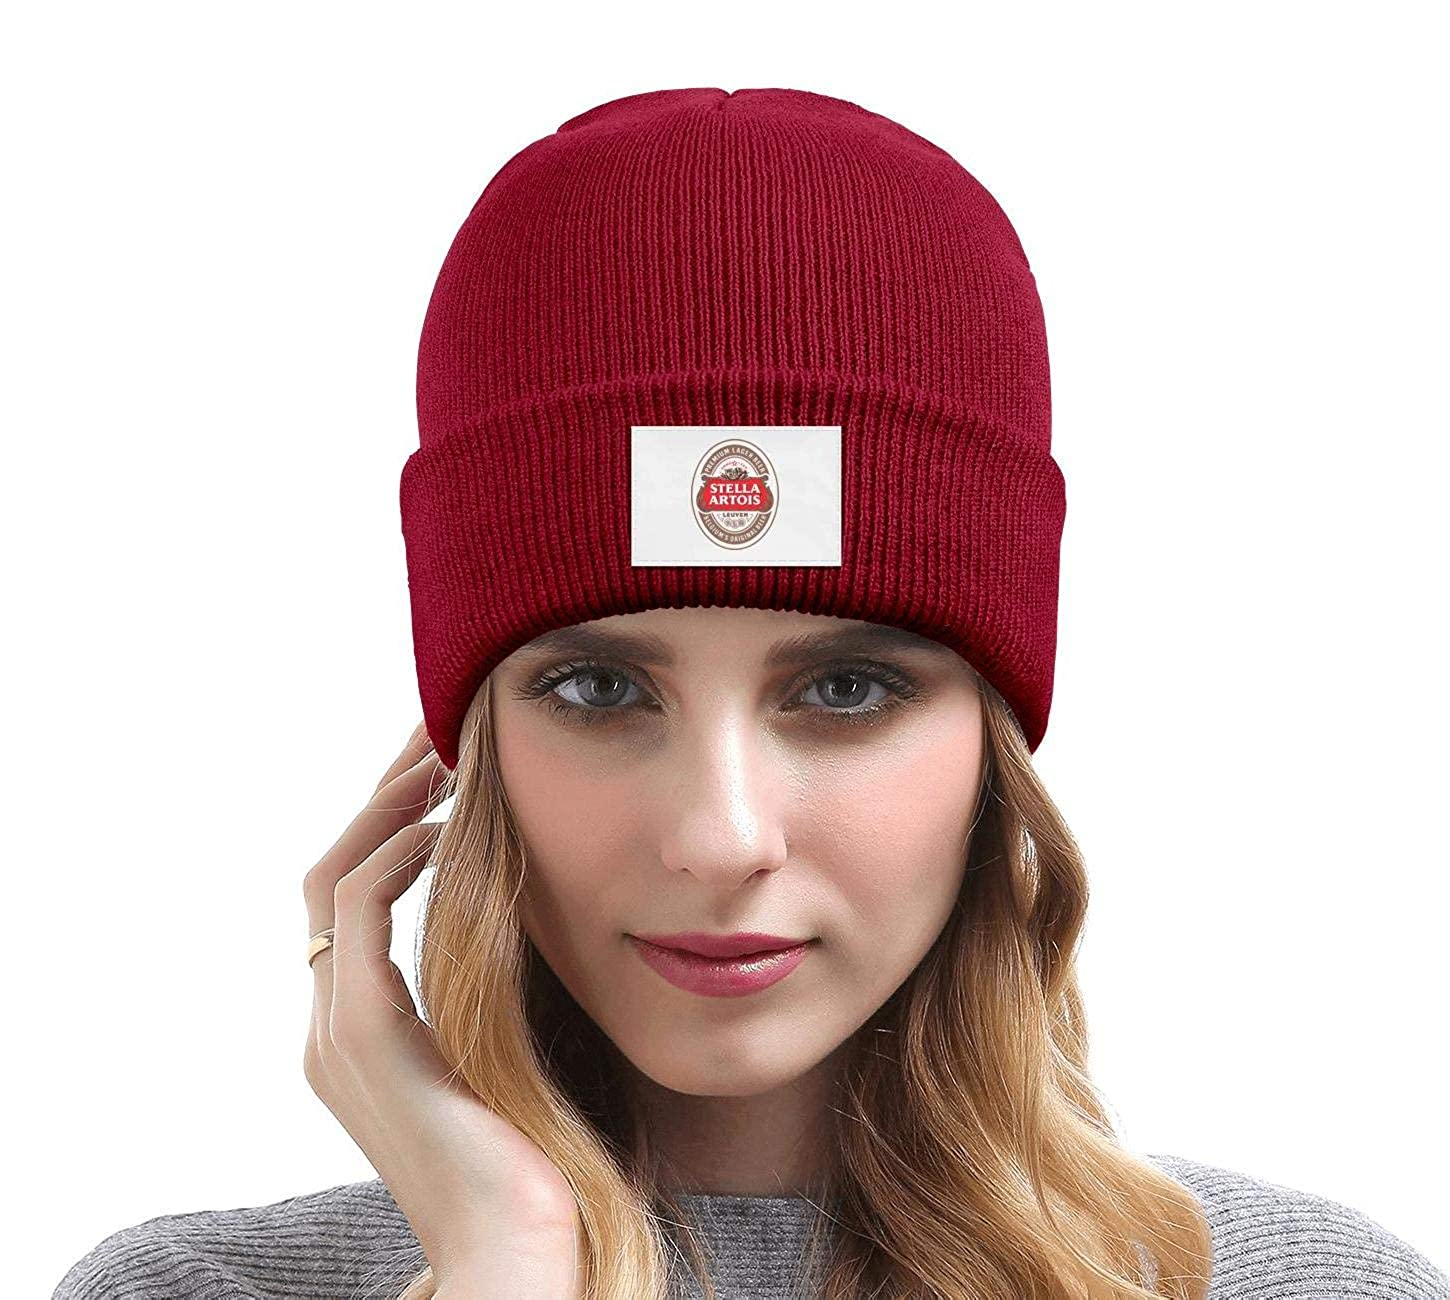 YJRTISF Popular Music Stay Warm Knit Caps Stella-Artois-Beer-Logo Unisex Trending Beanie Hat for Men